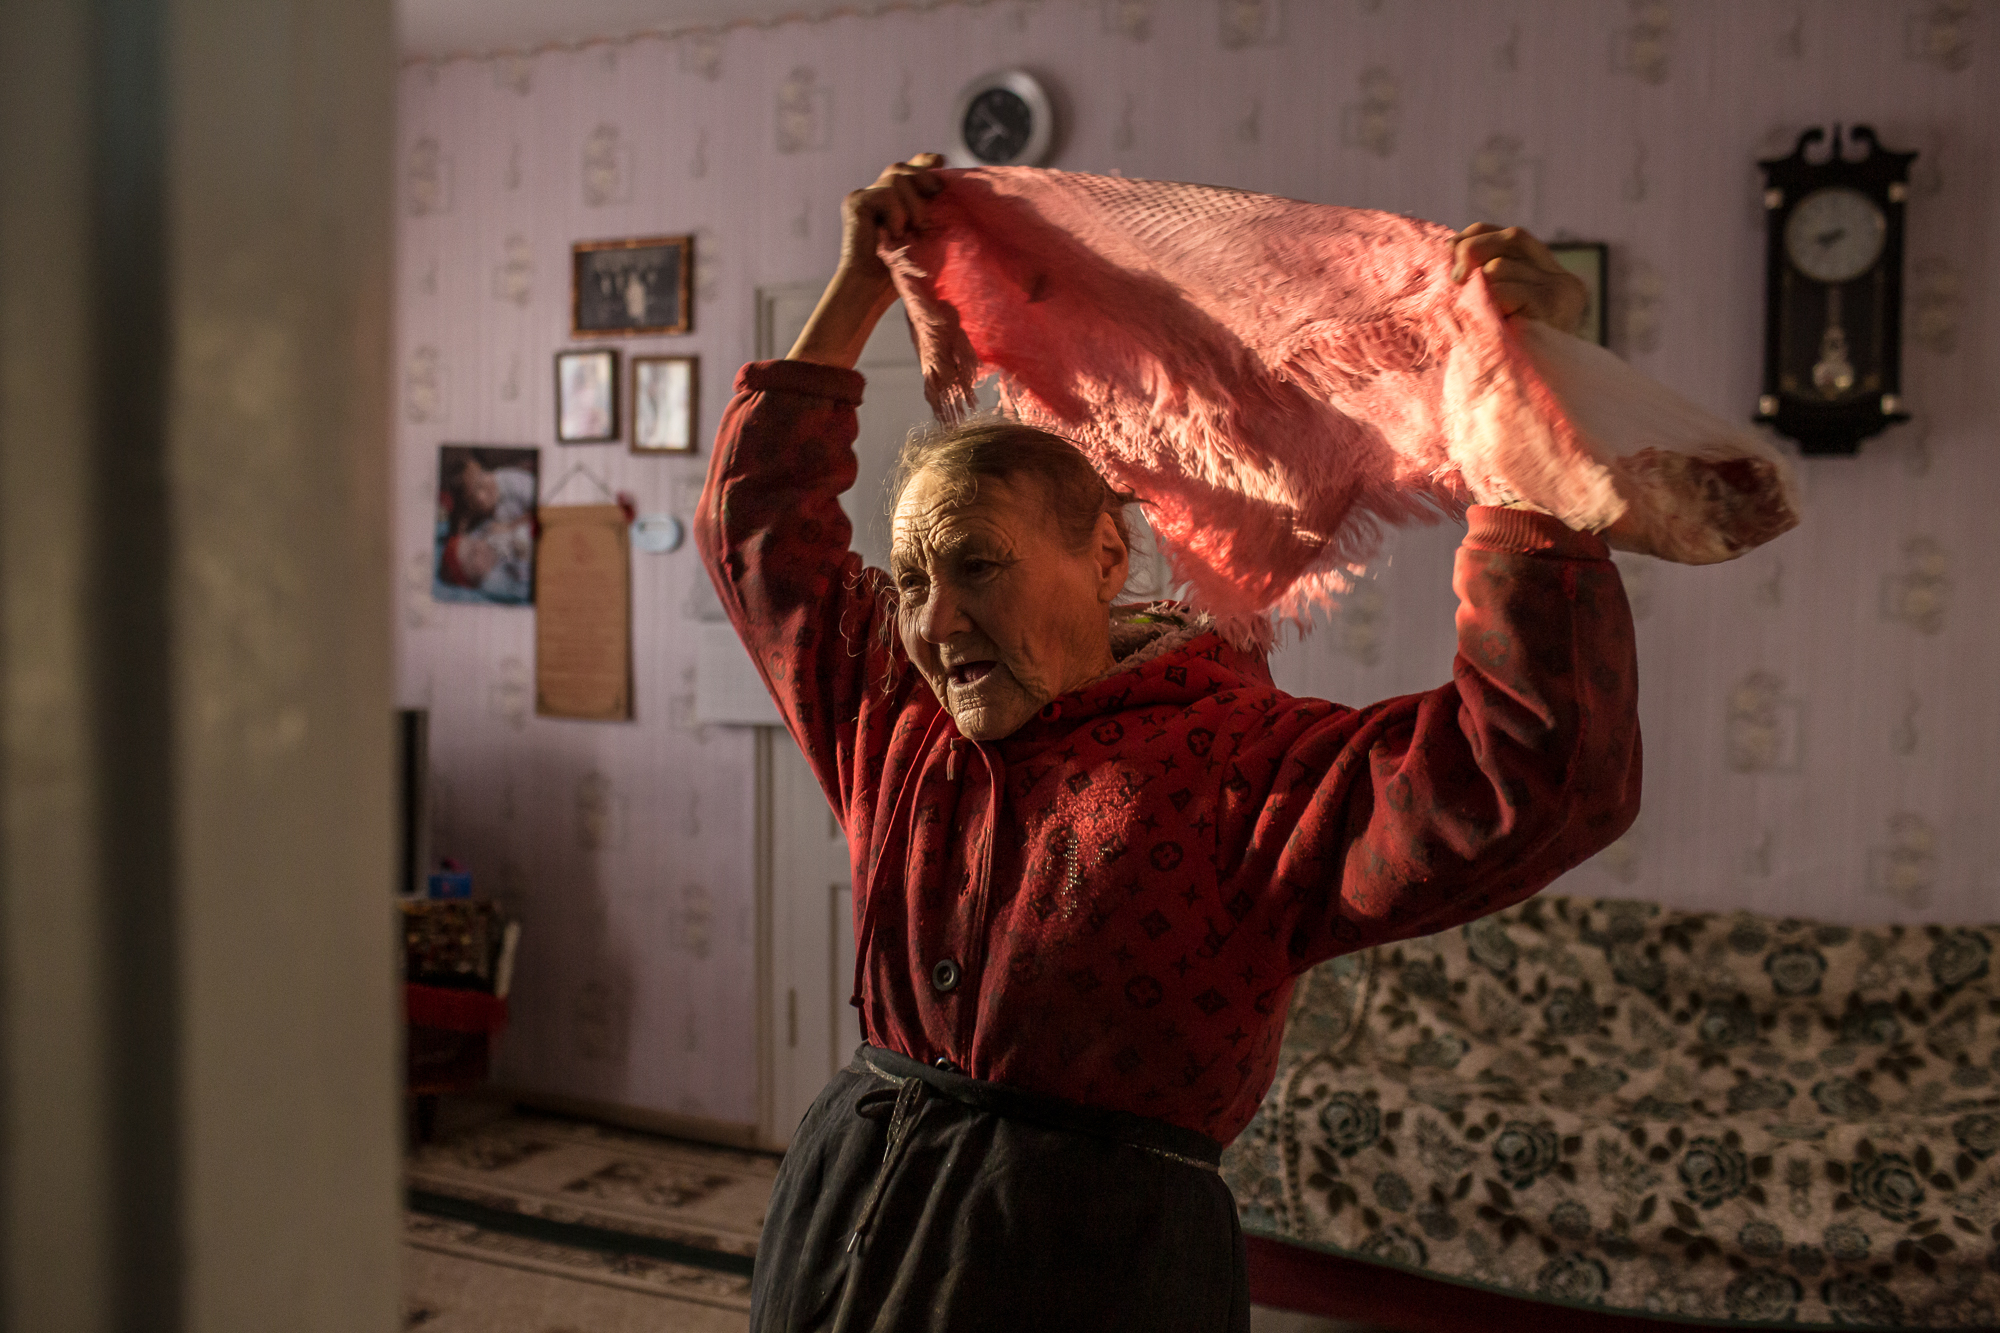 Olha Habro, 76, puts on a scarf in the living room on October 22, 2020 in Borshchiv, Ukraine. Olha Habro was born and grew up in the village of Borshchiv and cooks very tasty borshch with beans. I took this photo for the story about borshch for the NYTimes. Oksana Parafeniuk is an independent photographer based in Kyiv, Ukraine. In addition to her personal projects, Oksana has worked with such international media and organizations as The Washington Post, The New York Times, MSF, UNHCR, Save the Children and others. Oksana co-leads the Women Photograph Kyiv Chapter in Ukraine. Instagram: @oksana_parOksana.paraeniuk@gmail.comwww.oksanaparafeniuk.com, The Journal_Color Theme